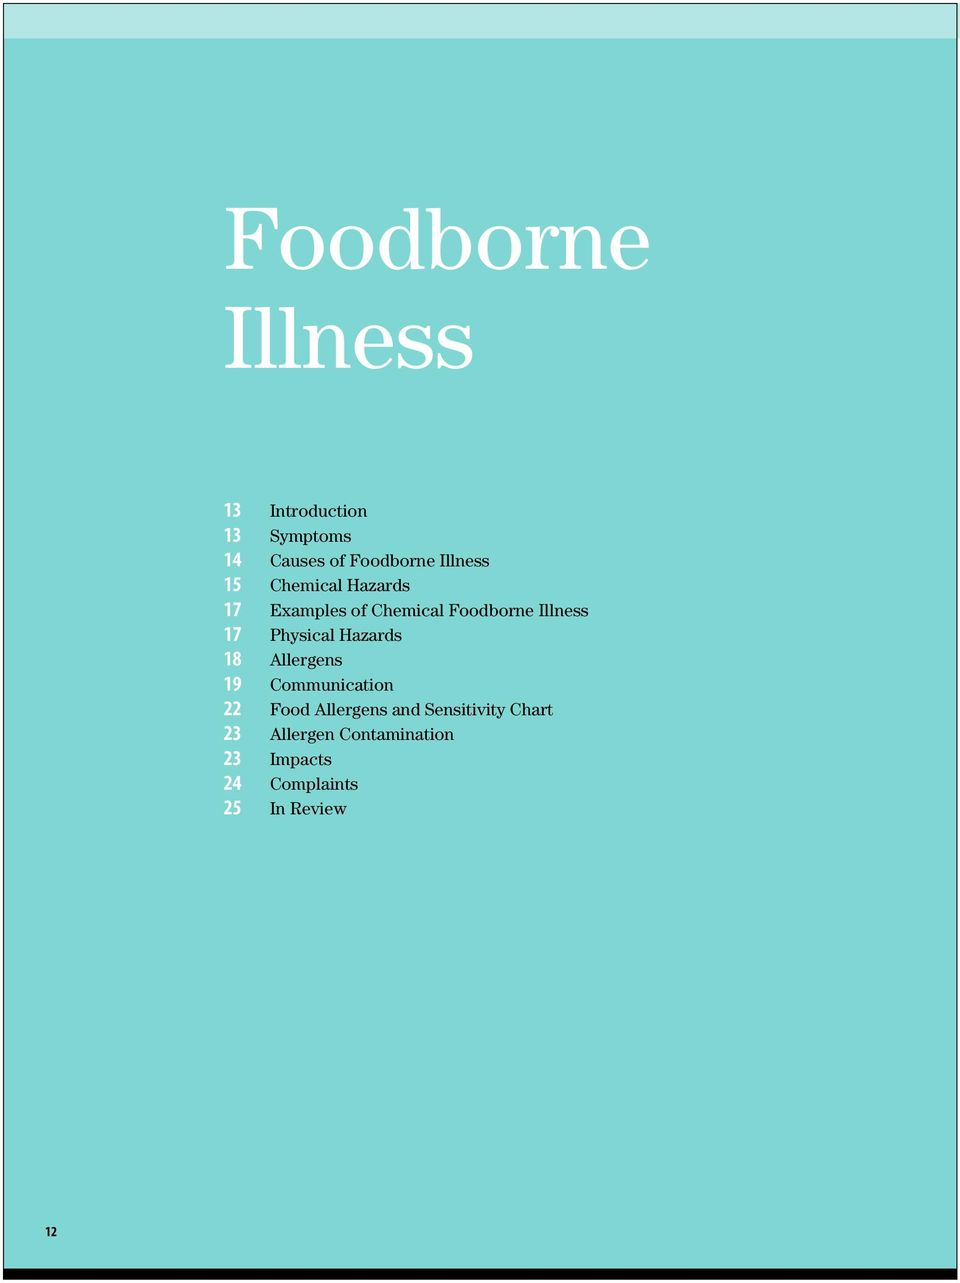 Physical Hazards 18 Allergens 19 Communication 22 Food Allergens and